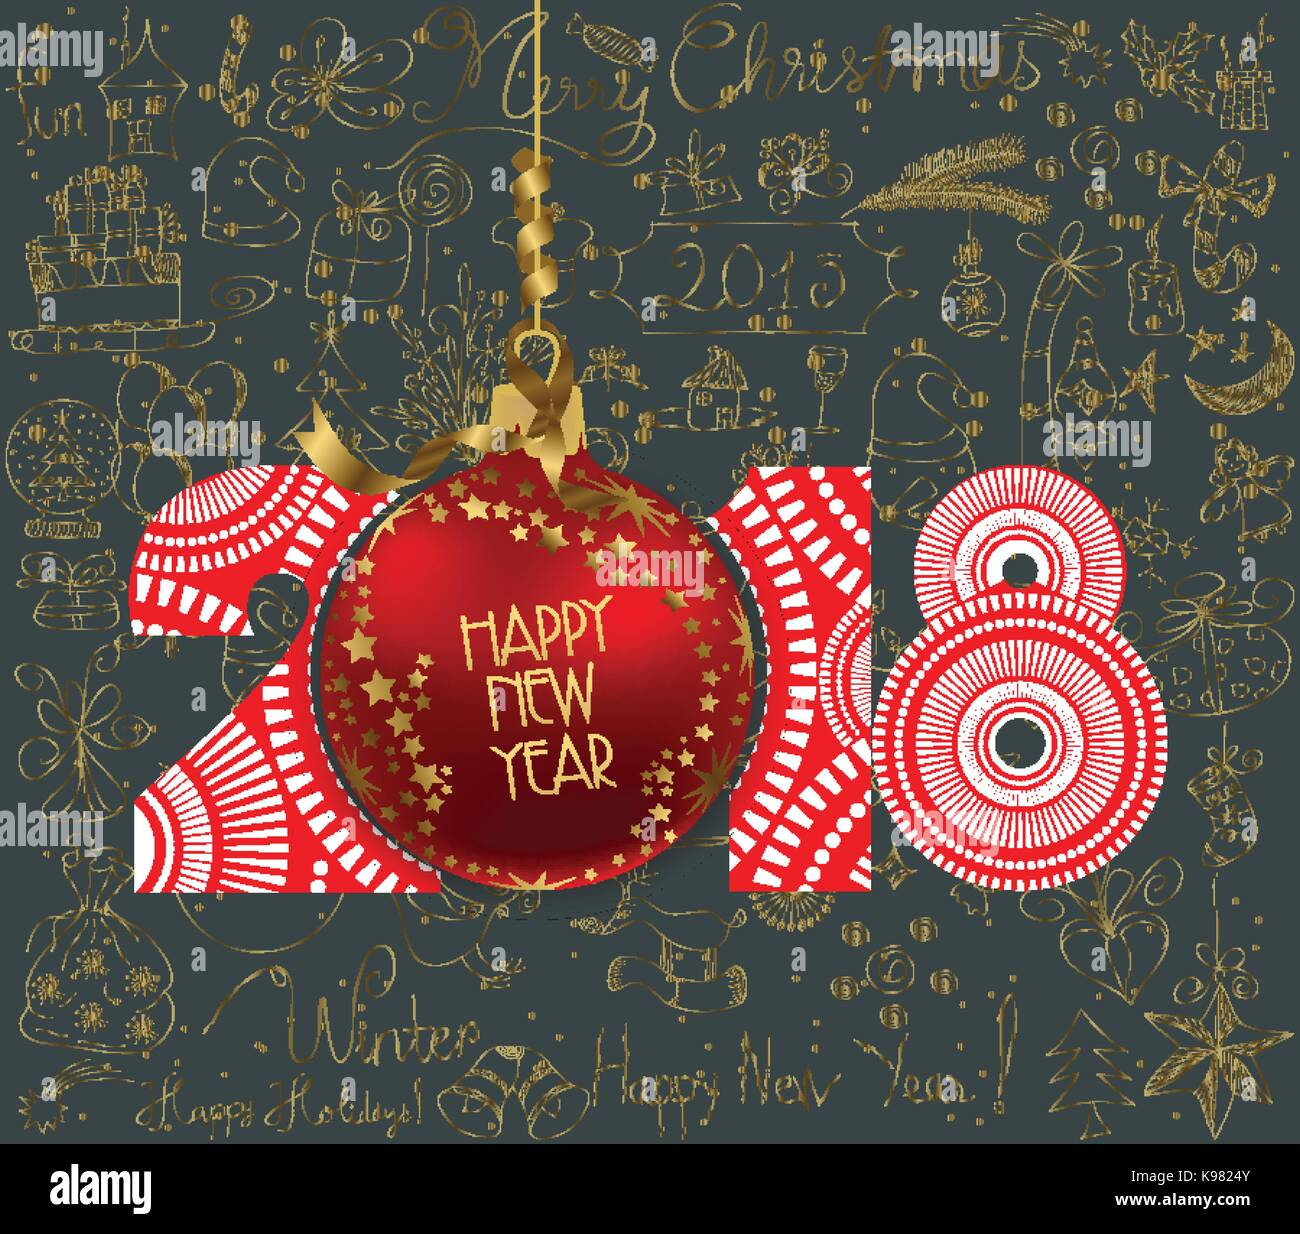 Merry Christmas Poster 2018.Luxury Elegant Merry Christmas And Happy New Year 2018